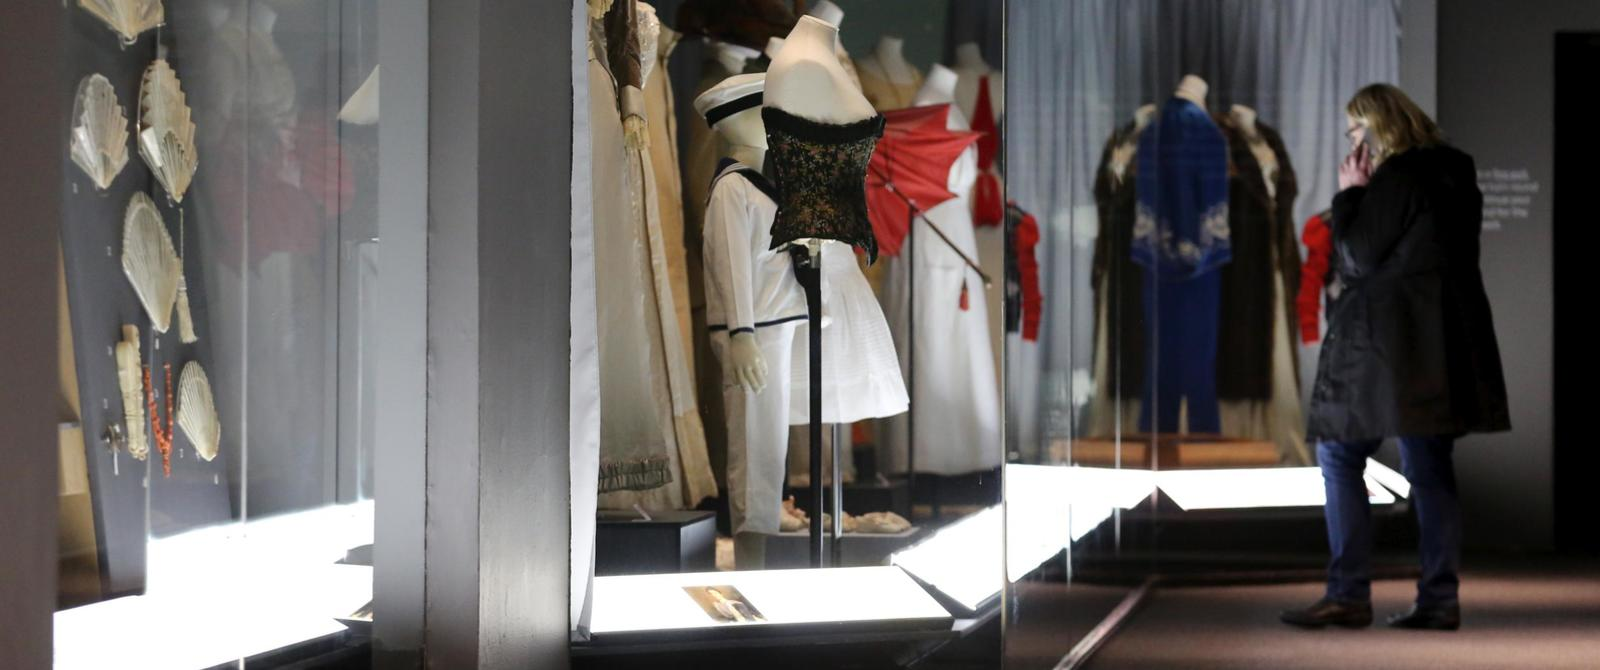 Image: Fashion Museum galleries